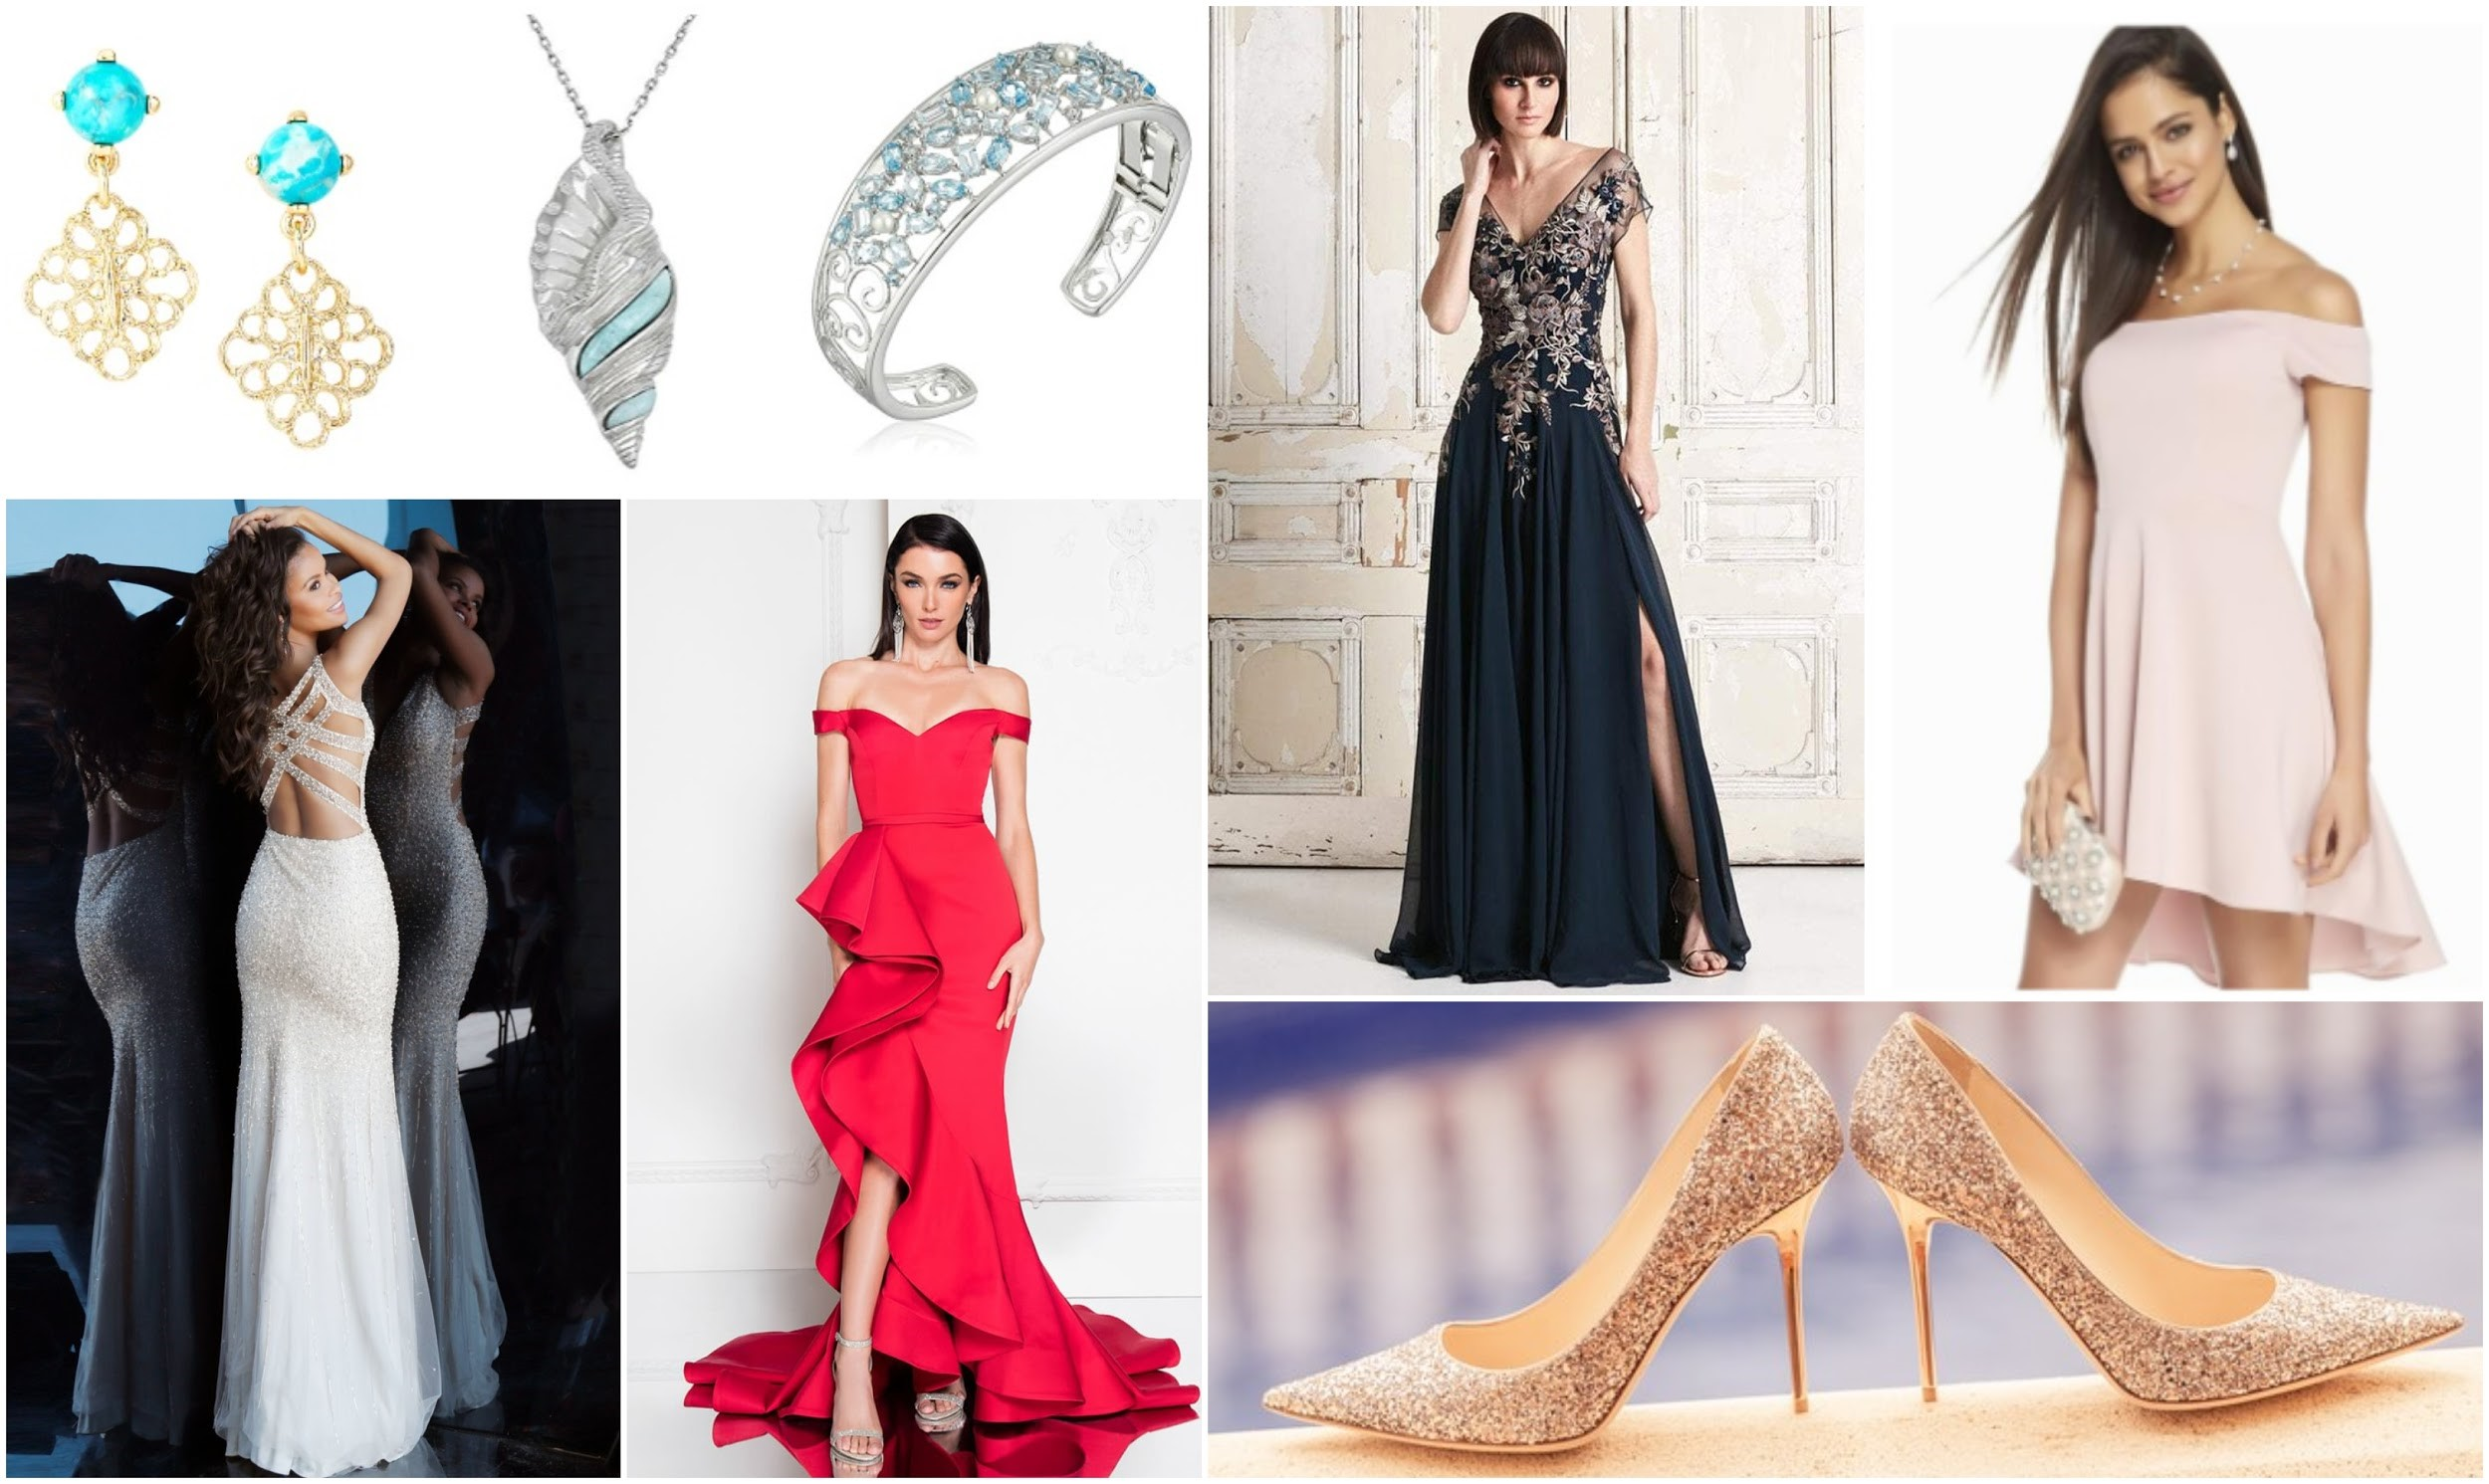 How to Pack for a Destination Wedding – 5 Tips for Creating a Wedding Capsule Wardrobe